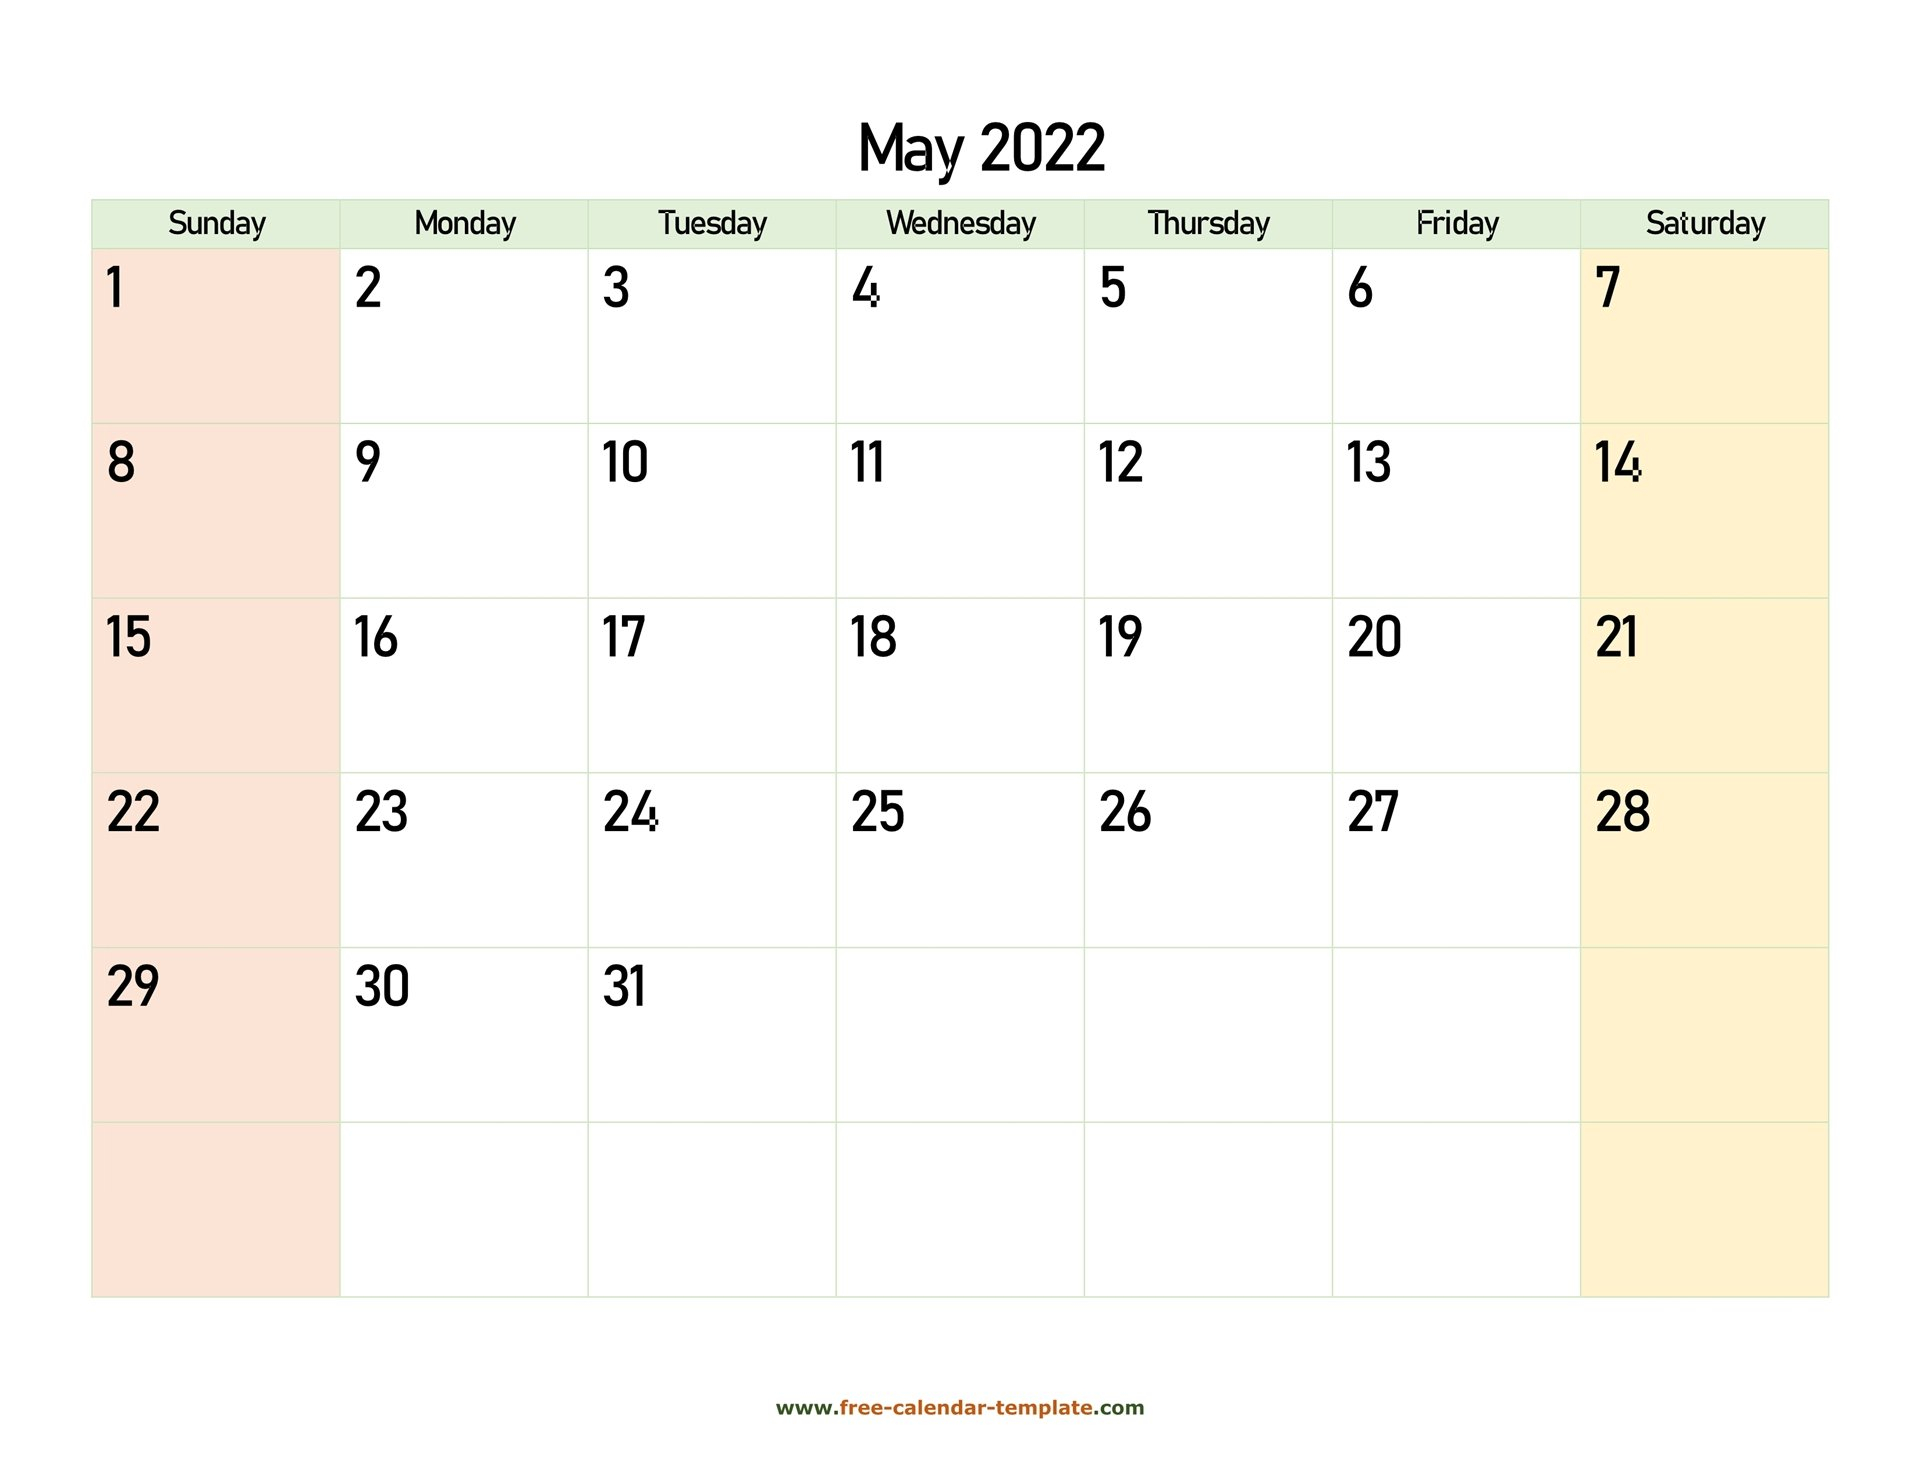 May 2022 Calendar Printable With Coloring On Weekend with regard to Printable Calendar May 2022